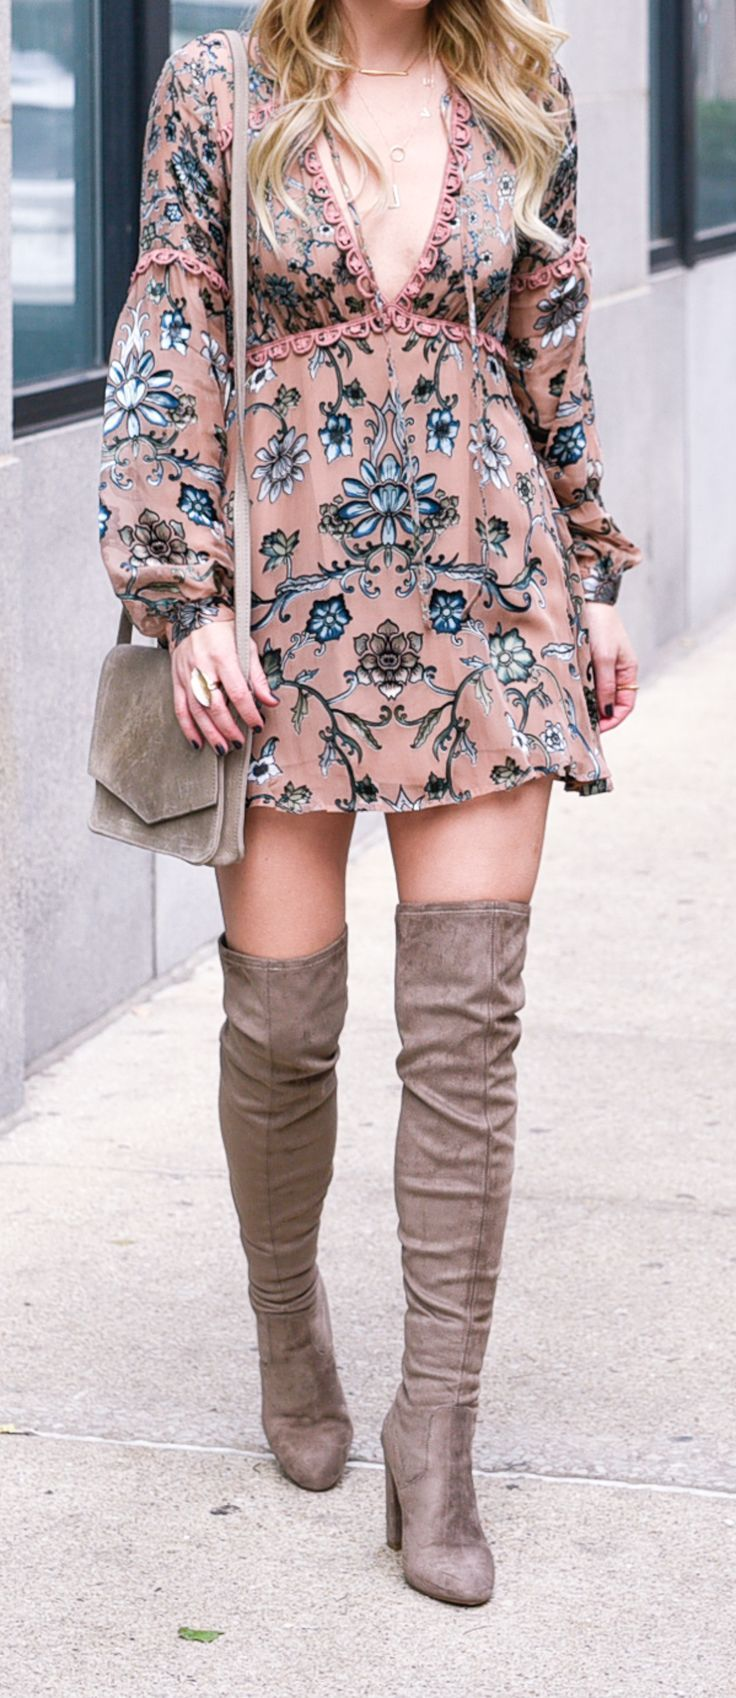 For Love & Lemons floral dress